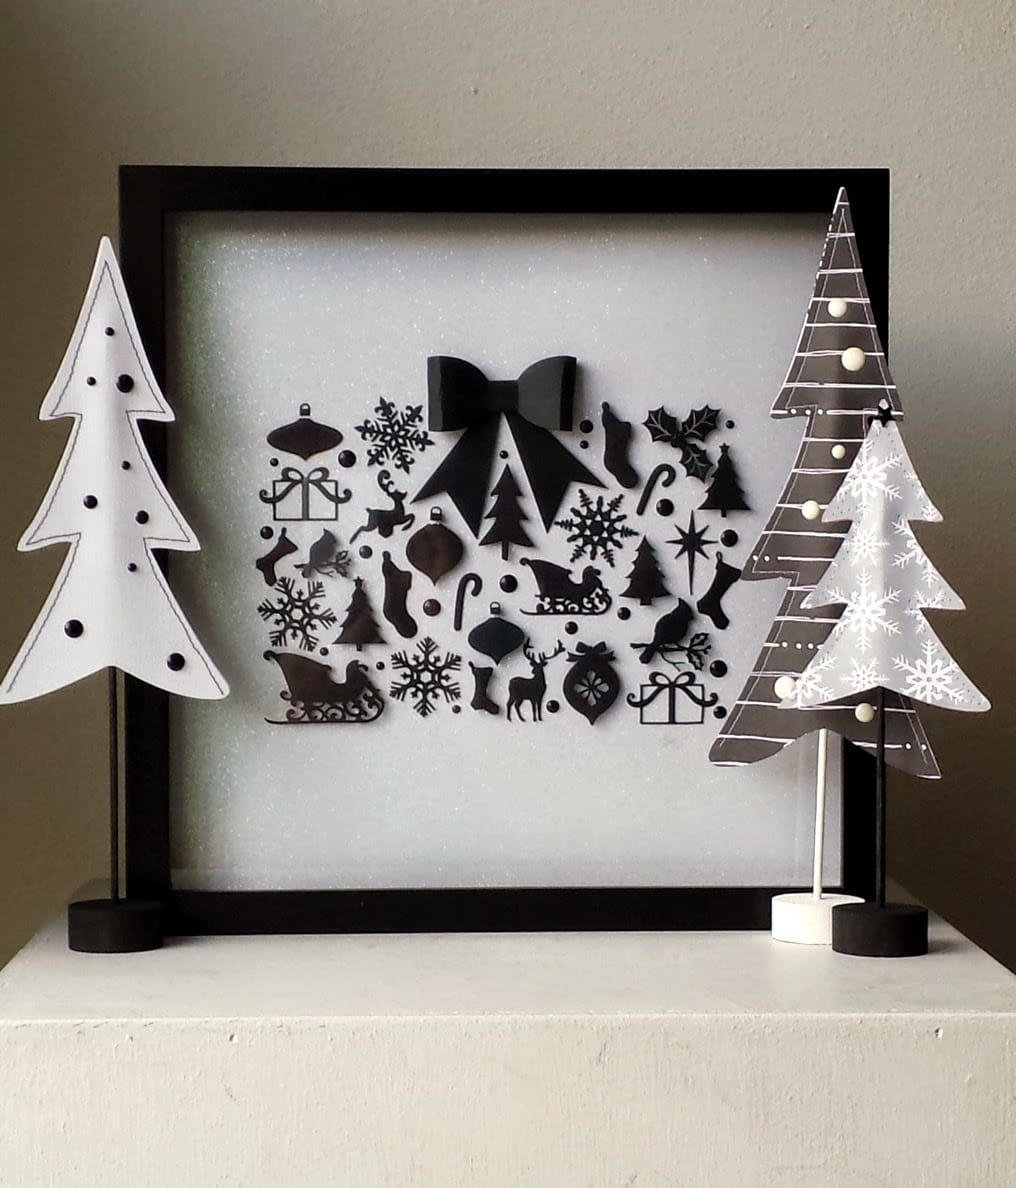 Stunning Black and White Christmas Display and christmas decor idea